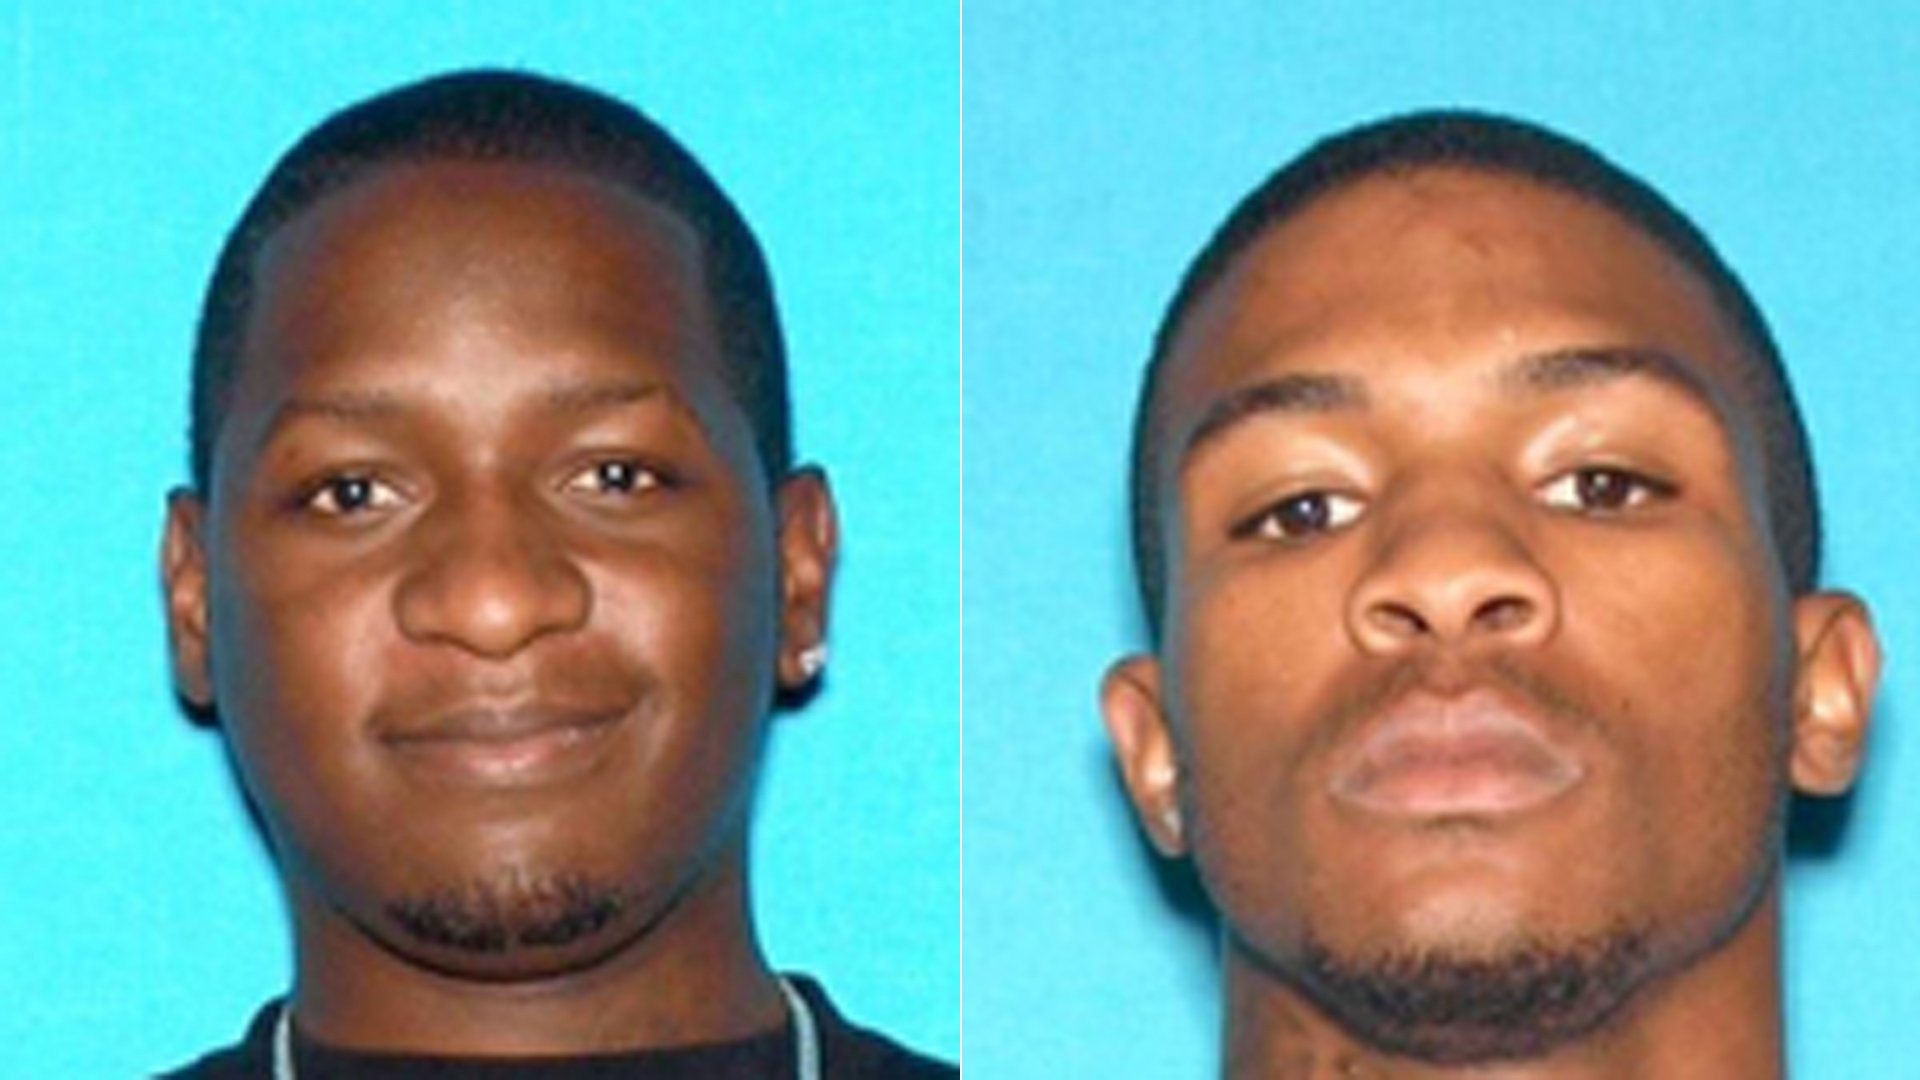 Travon Lamar Williams, left, and Samathy Mahan, right, are seen in a photos released by the San Bernardino Police Department on July 9, 2016.